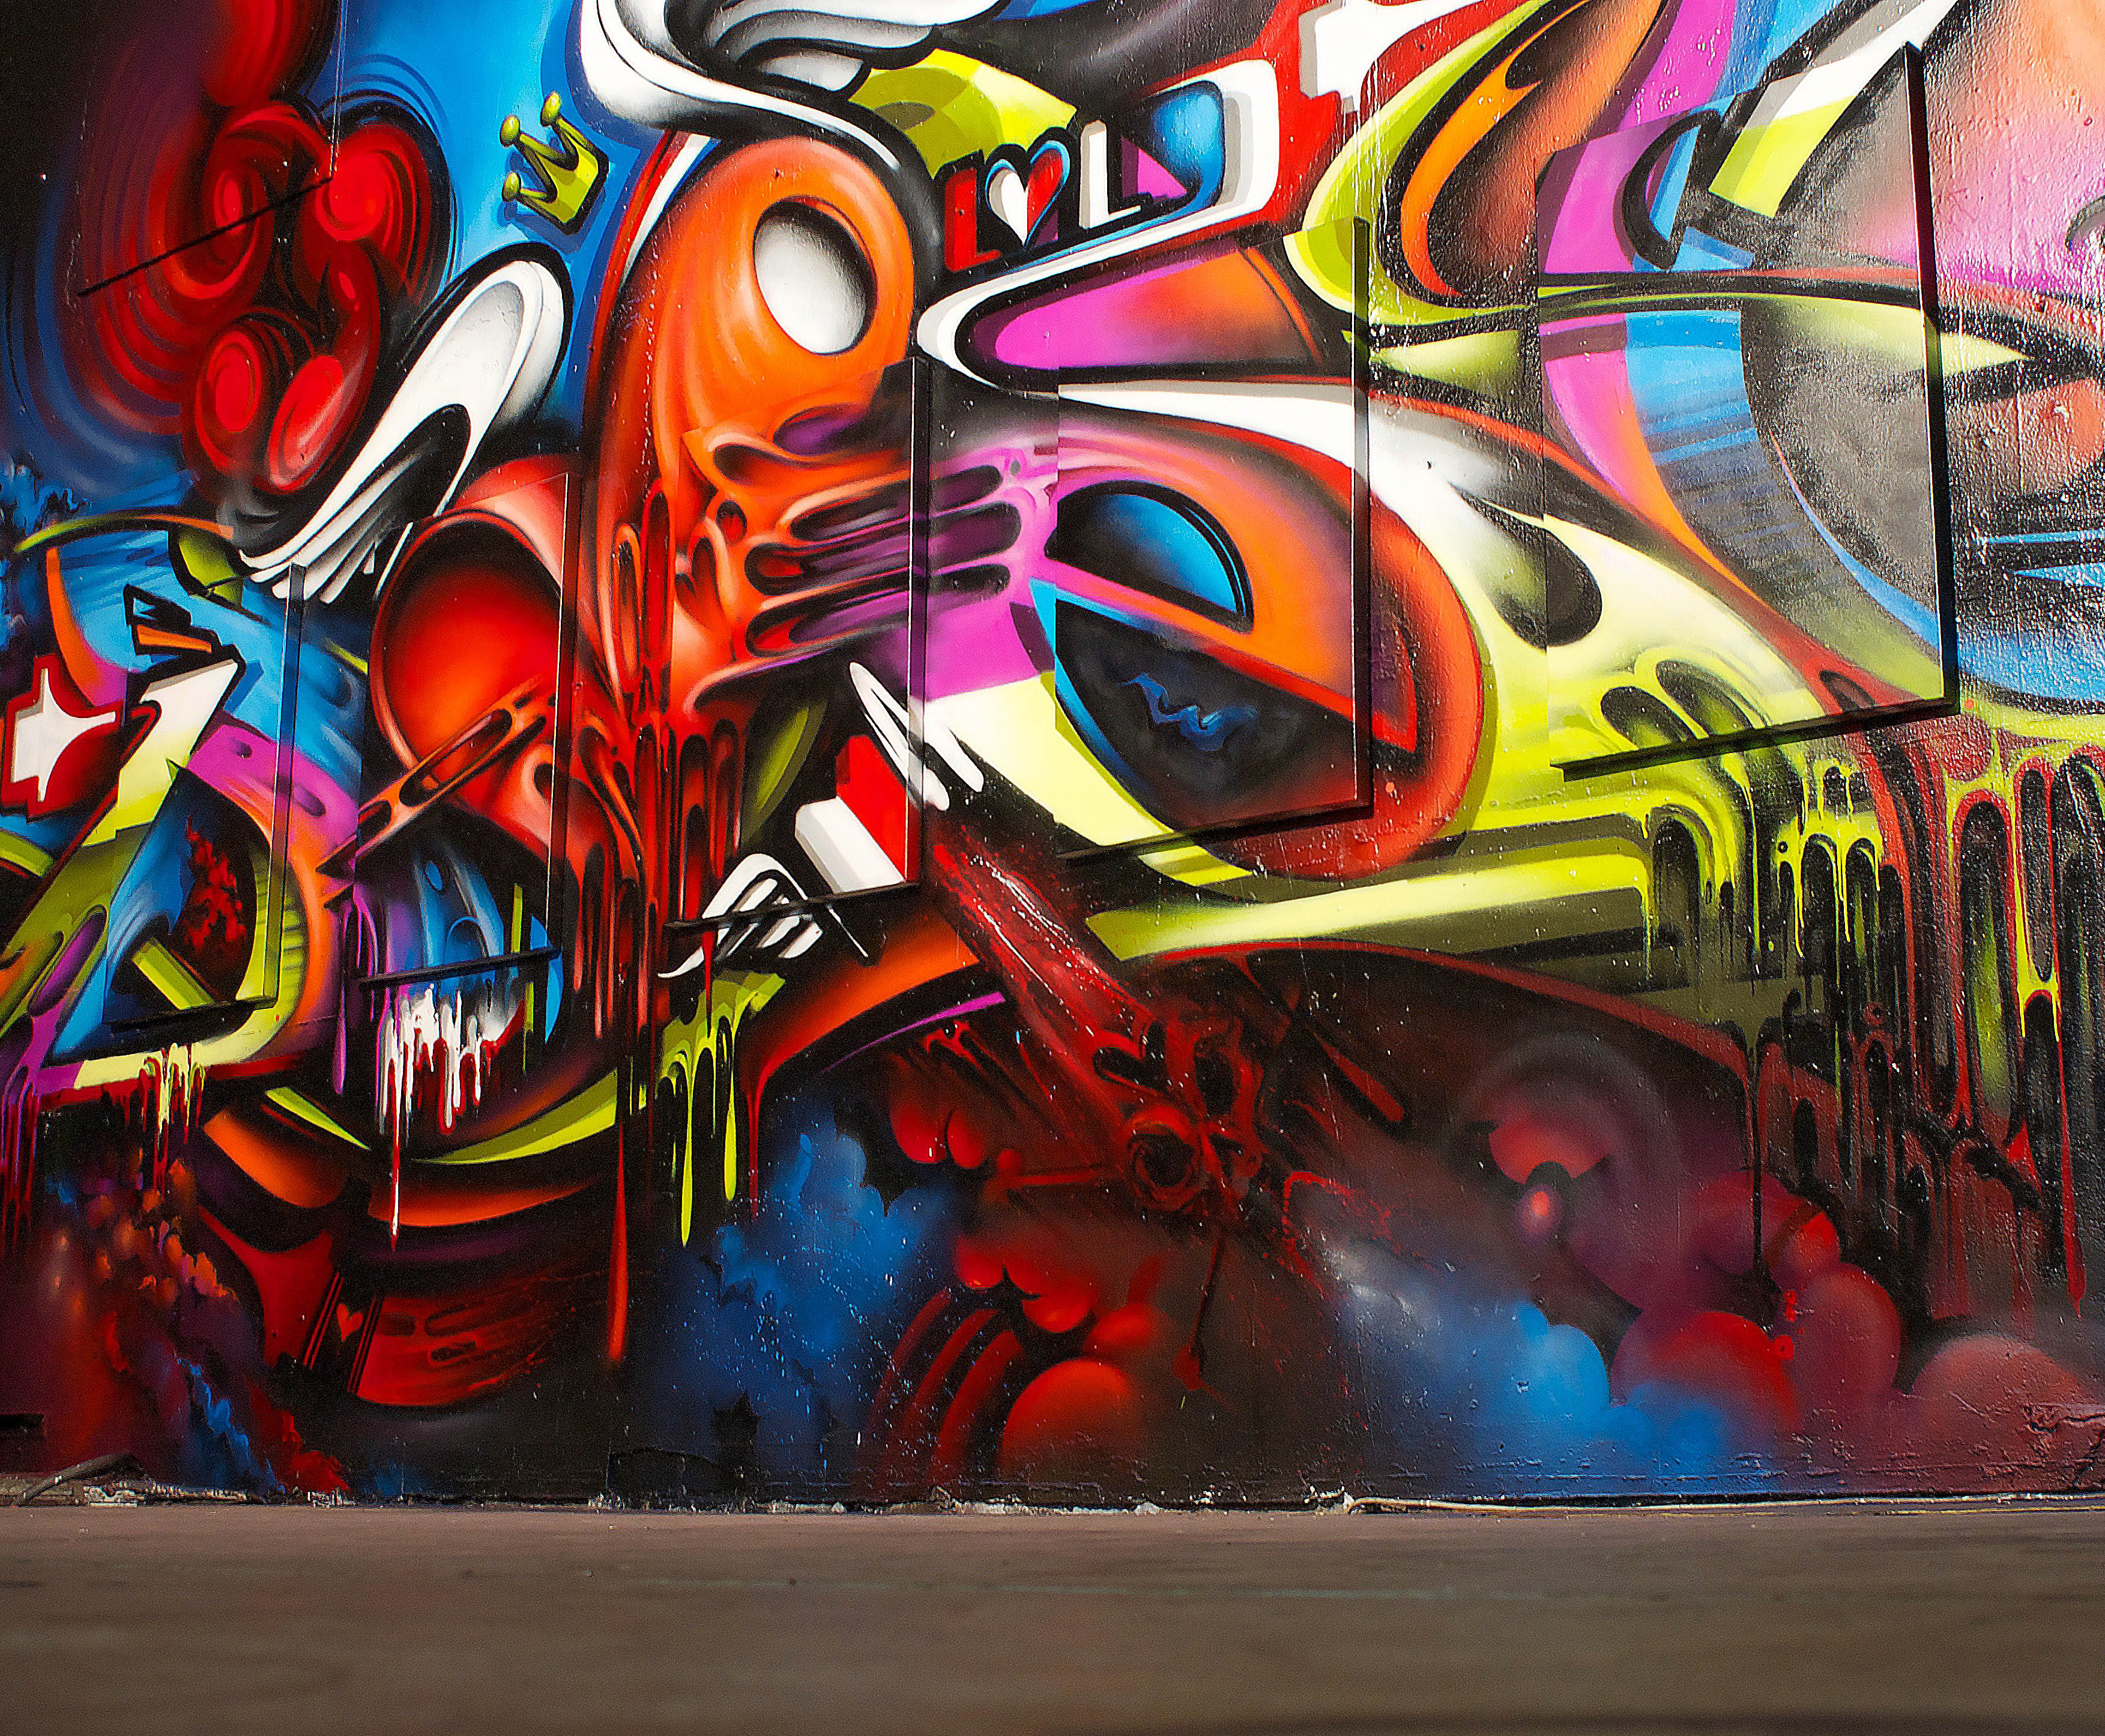 A work by Does - Sydney australia mural detail i love letters exhibition